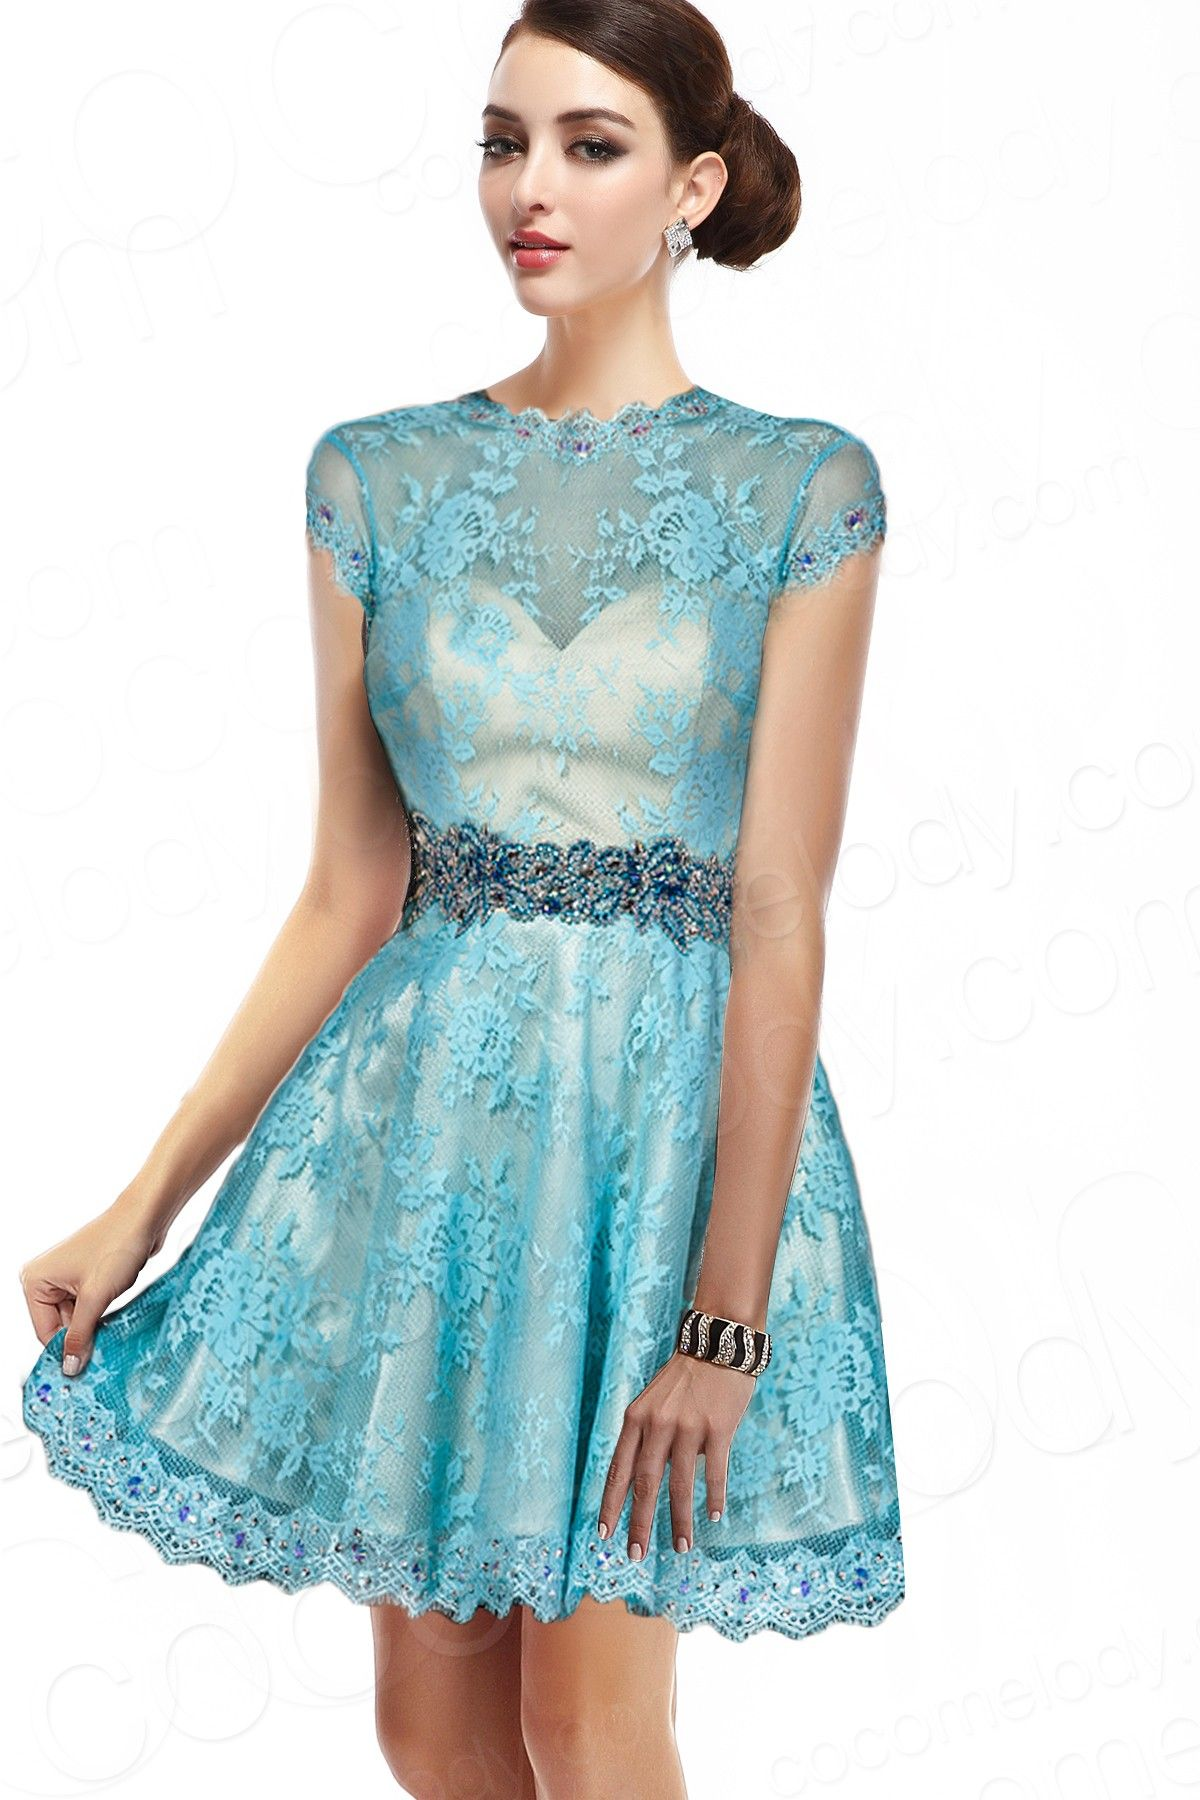 Light green lace dress  Charming ALine Illusion ShortMini Lace Light Sky Blue Cap Sleeve